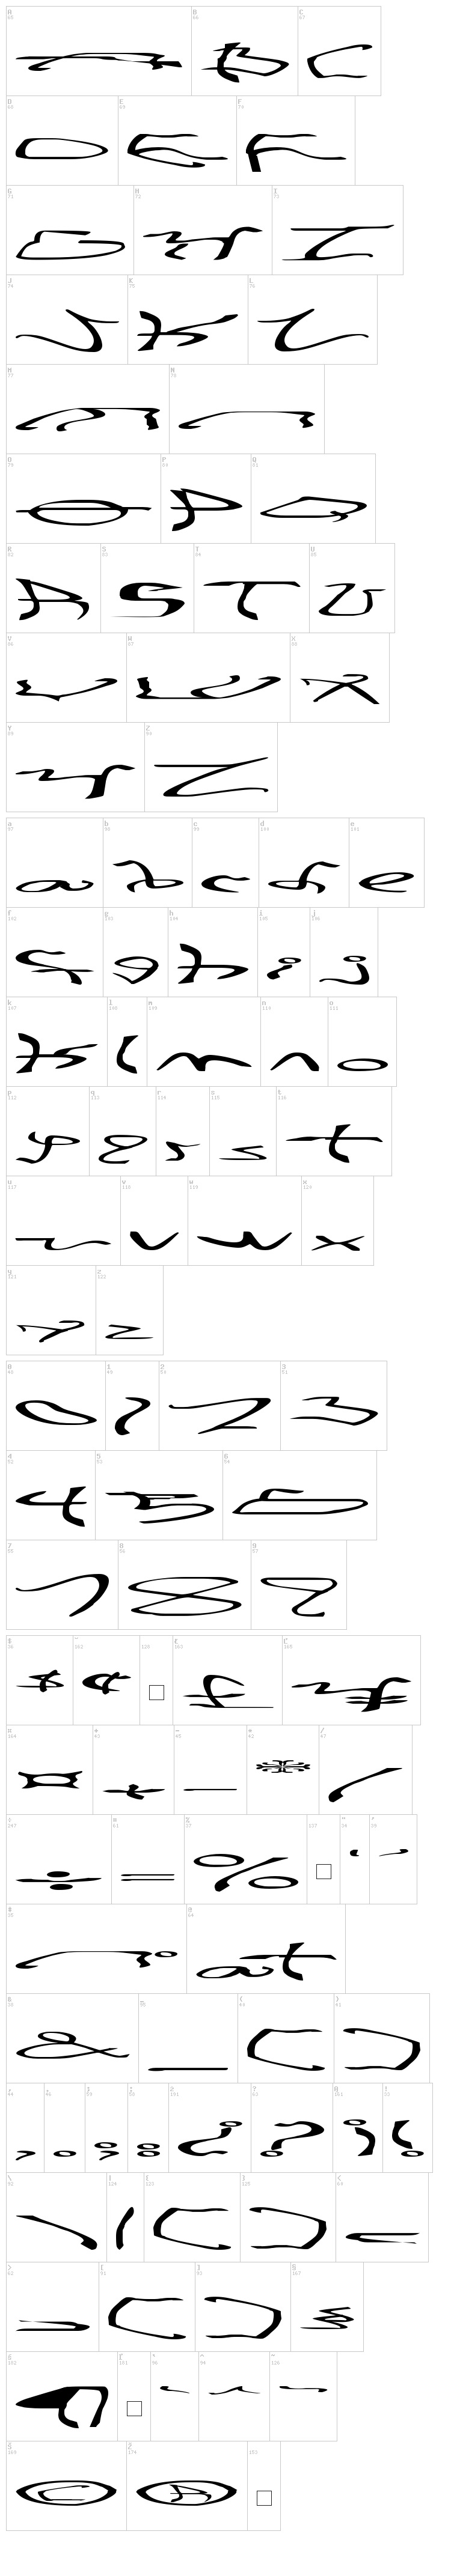 001 Stretched-Strung font map